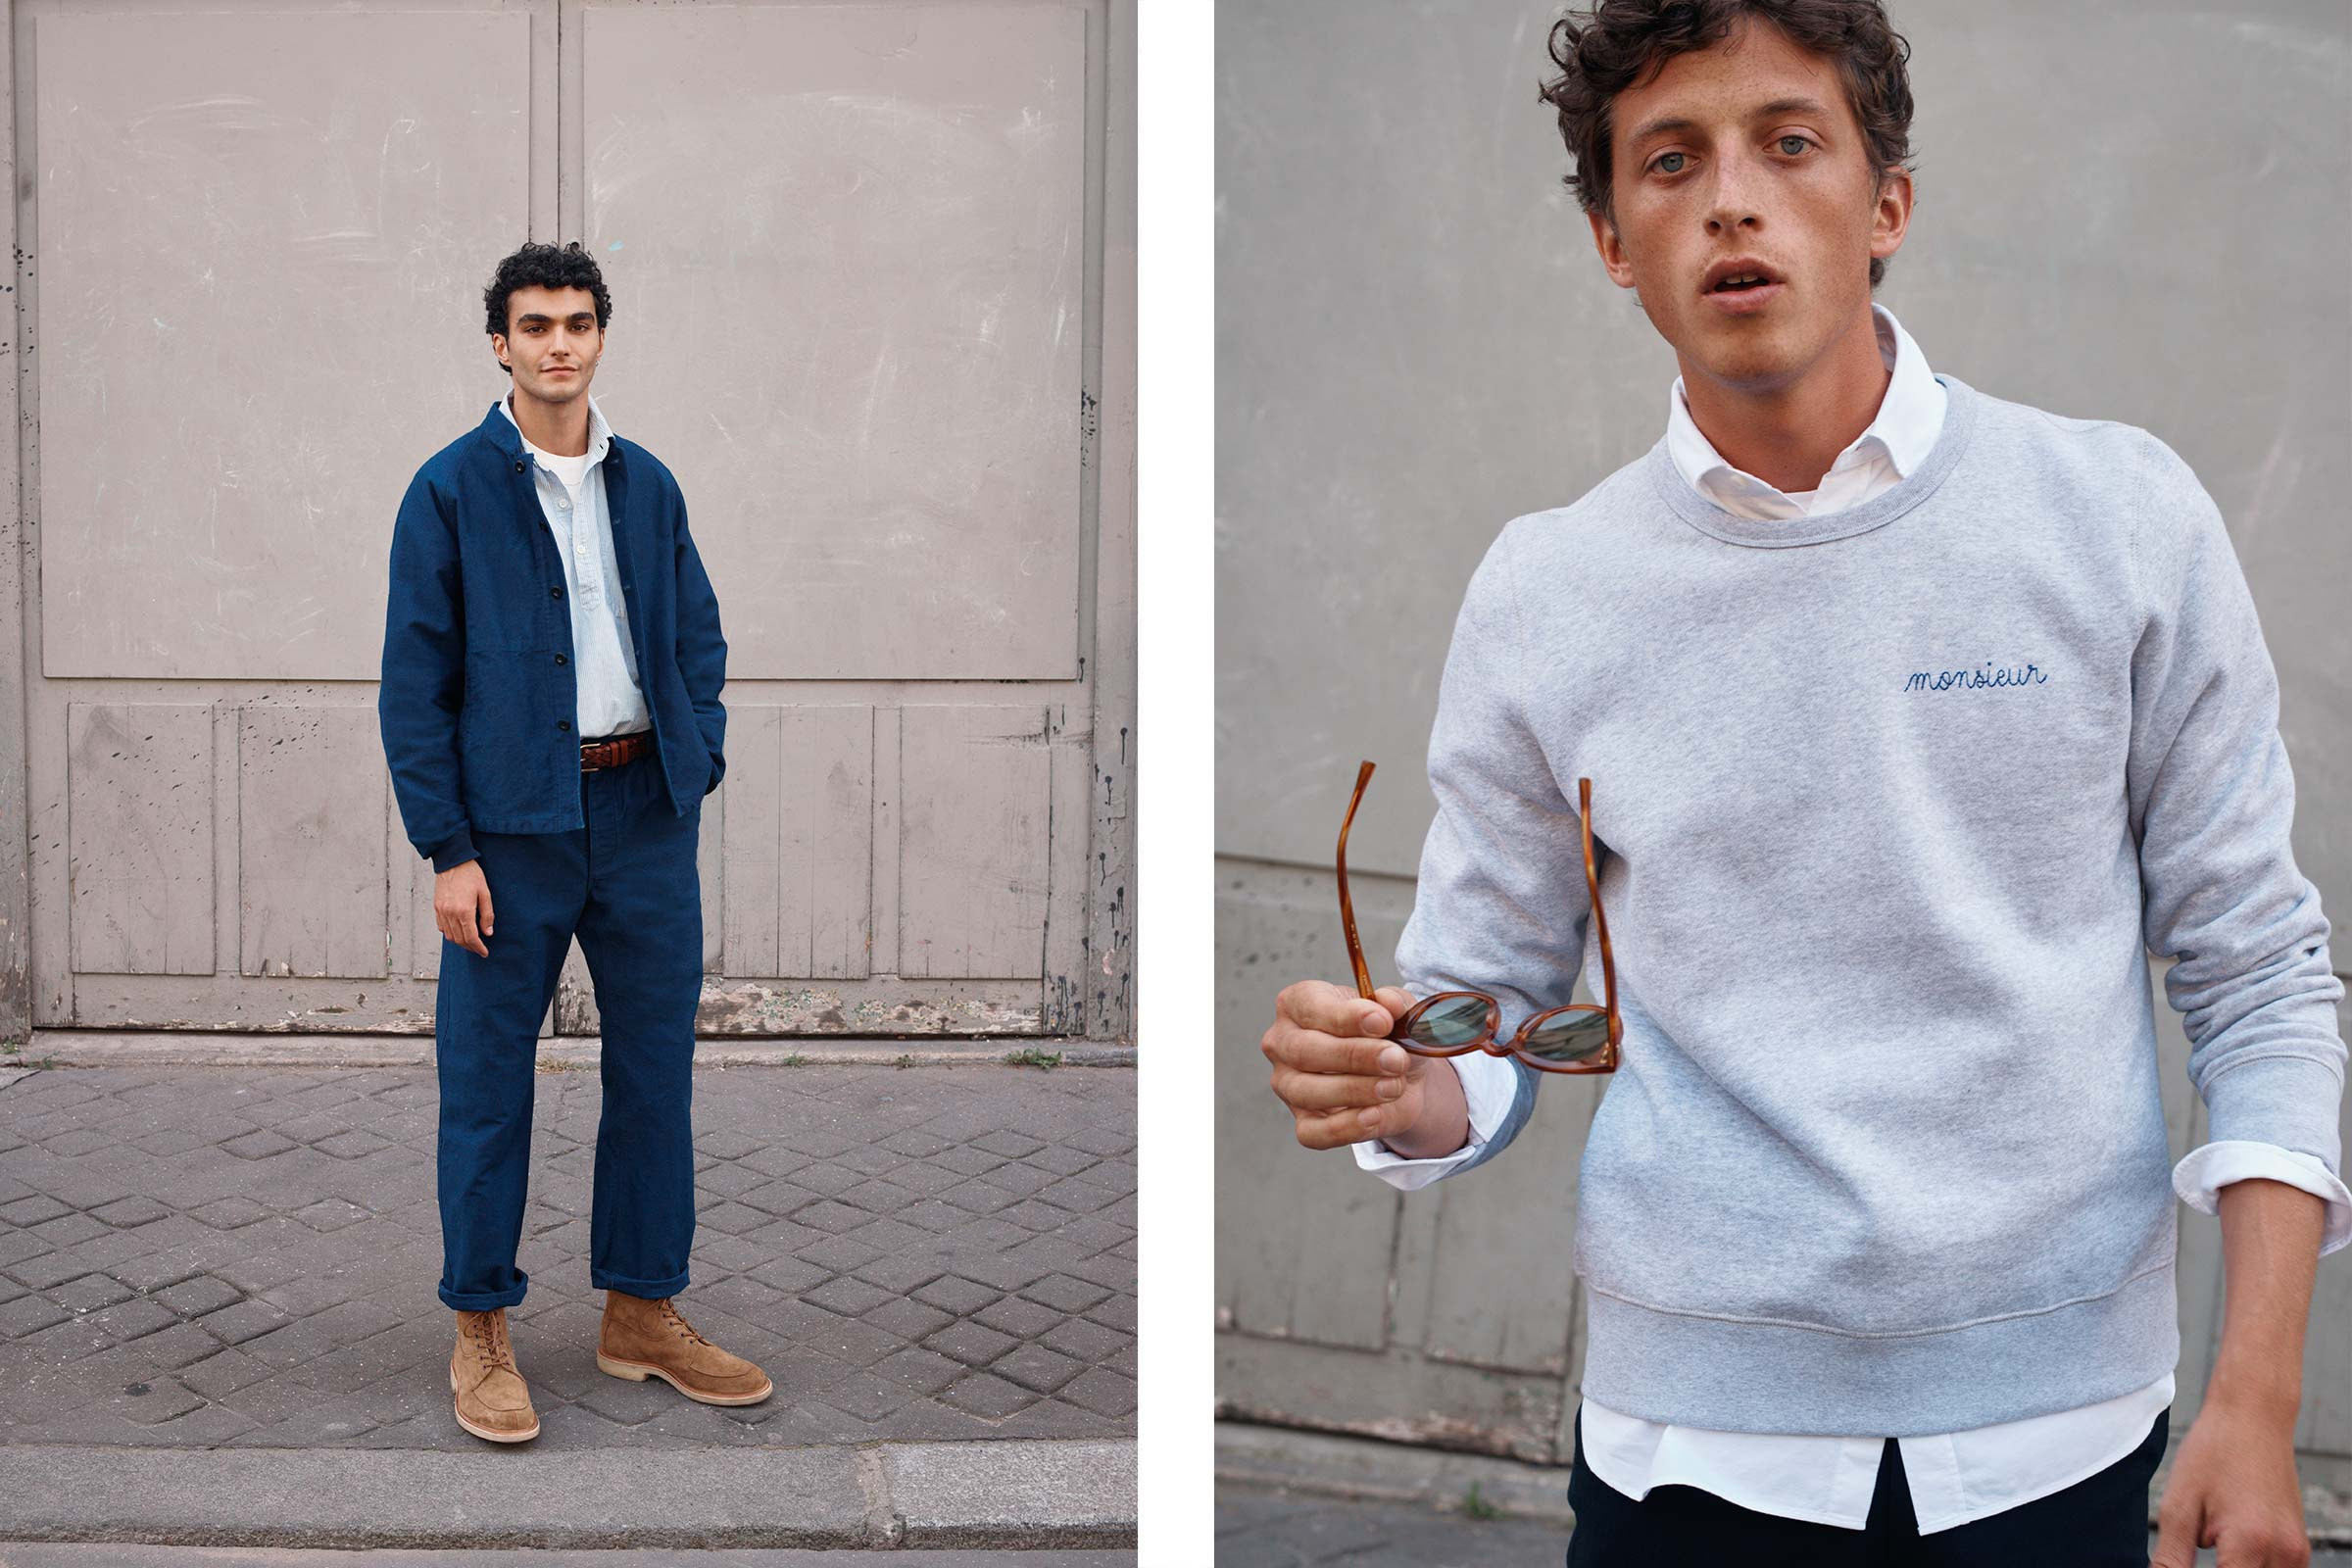 Le Meilleur Mr Porter Launches Capsule Collections Inspired By Iconic Ce Mois Ci